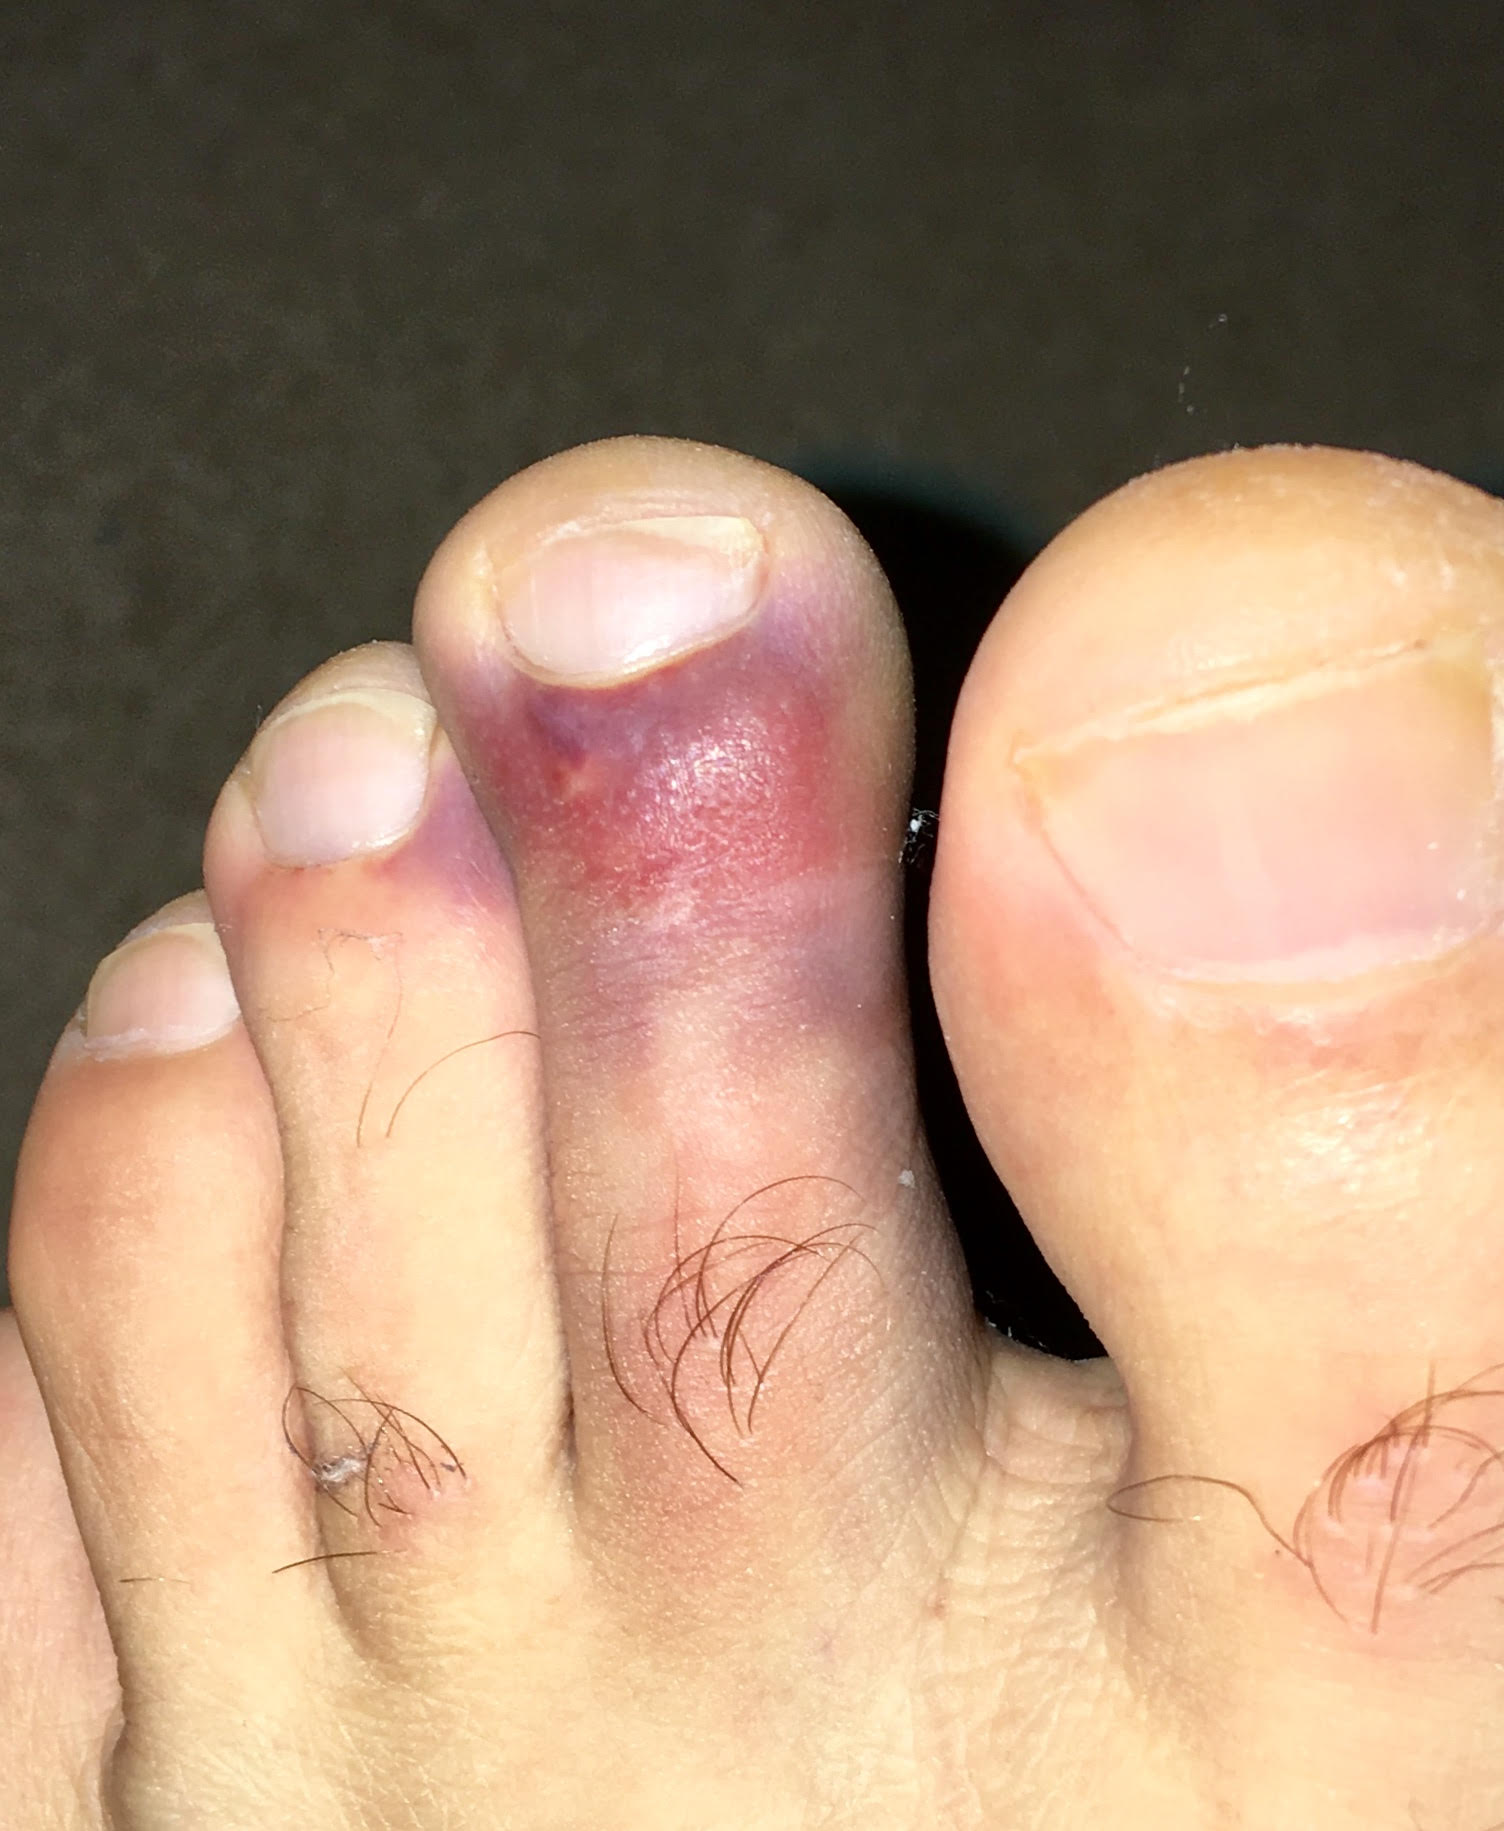 Giving Thanks for My Broken Toe: Being Swept Up in the Ocean of Good